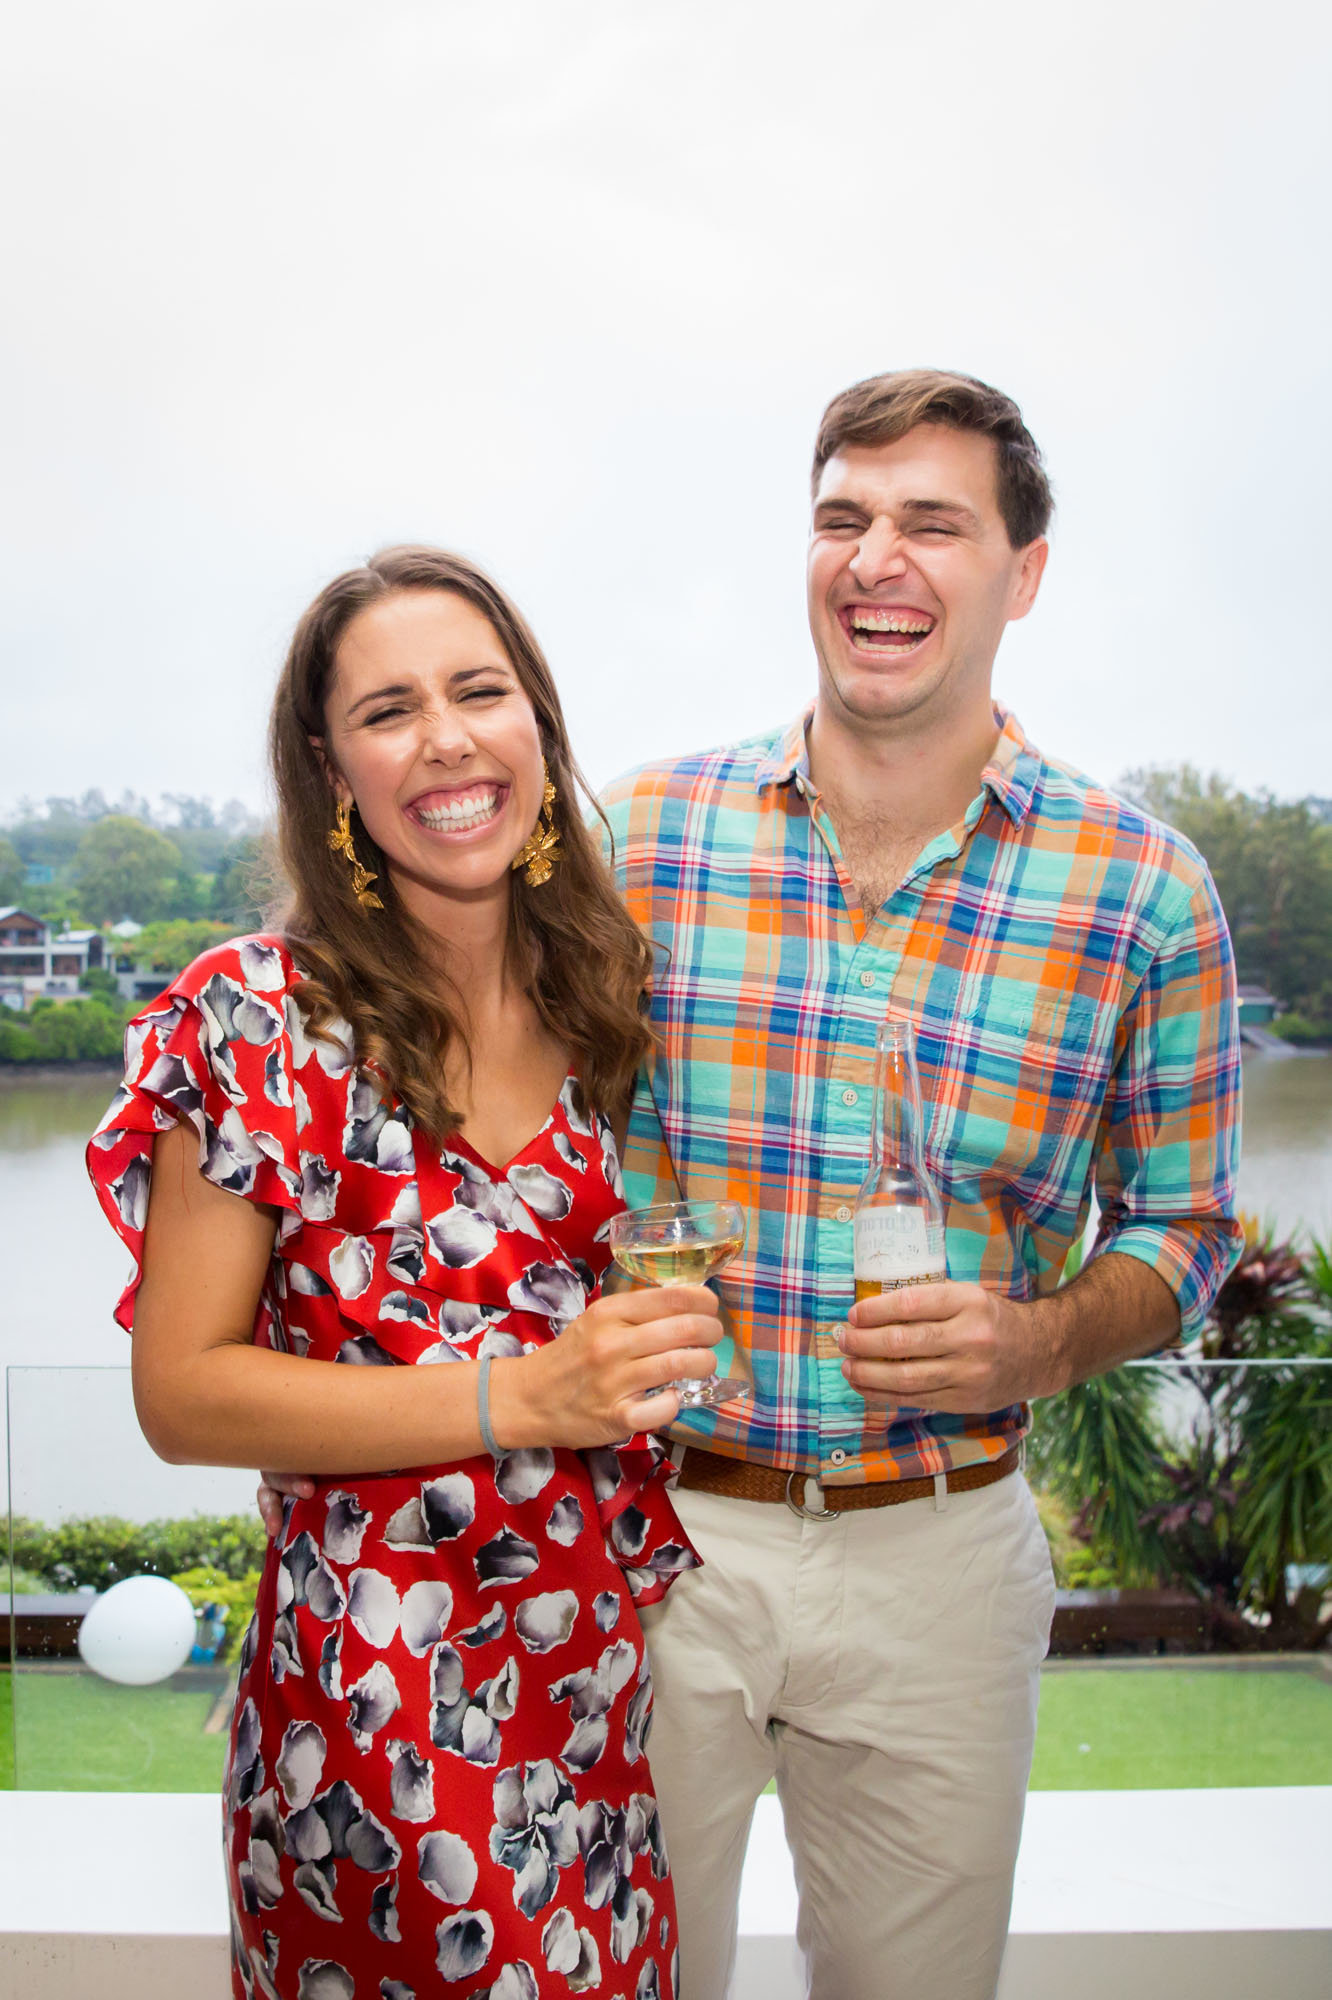 Emily_AL_EngagementParty_Photography_Chelmer_AnnaOsetroff-Highlights-Web-18